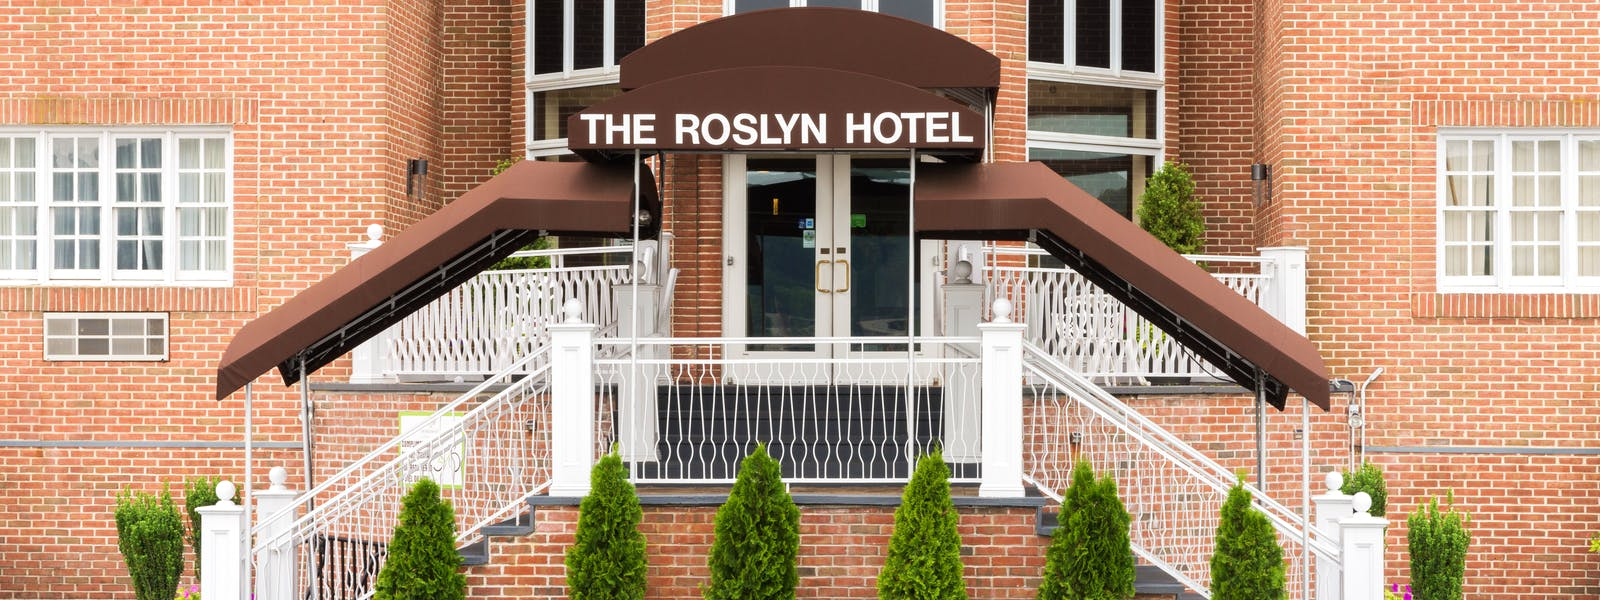 The Roslyn Hotel Long Island exterior entrace